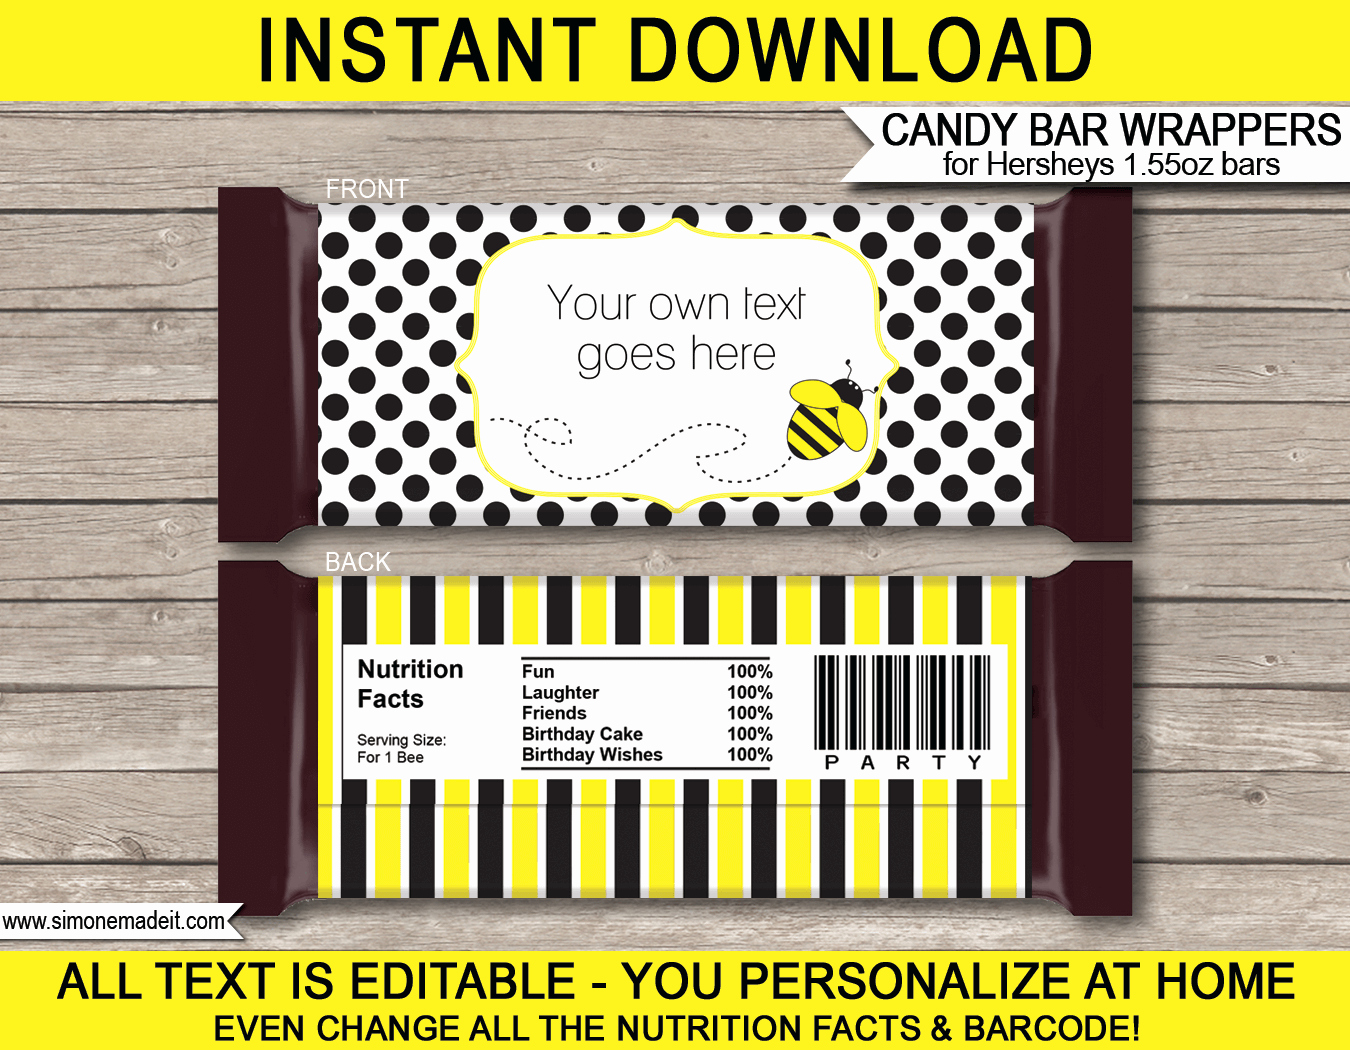 Candy Bar Wrapper Template Best Of Bee Hershey Candy Bar Wrappers